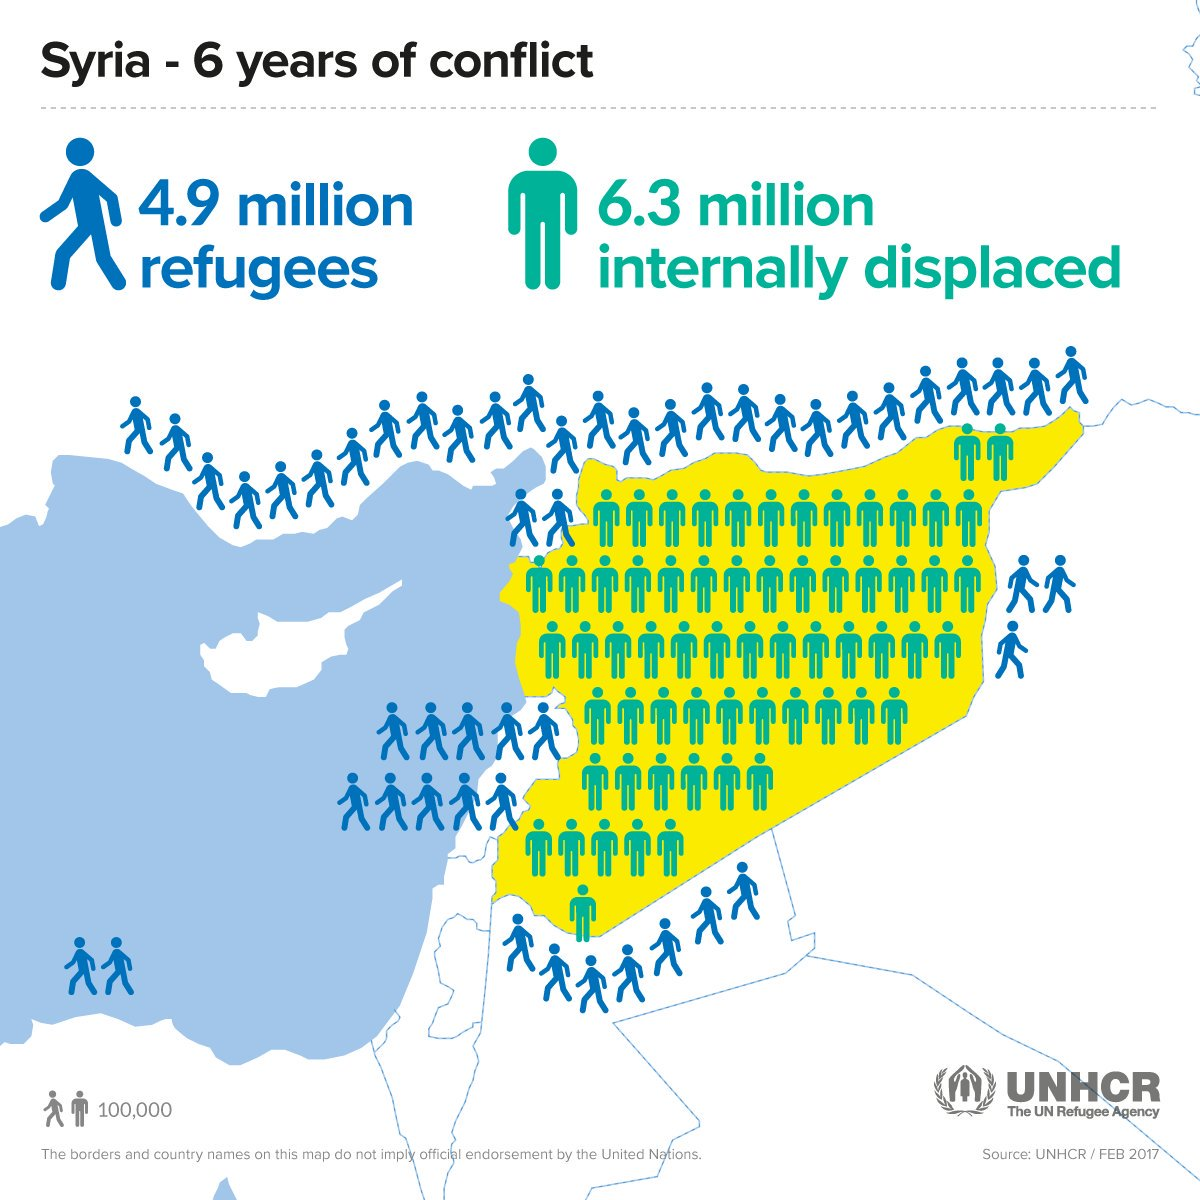 After 6 years of war, 11m Syrians have fled. Latest from @refugees is here: https://t.co/tEiR3or1H2 https://t.co/XPVQ02YkpH